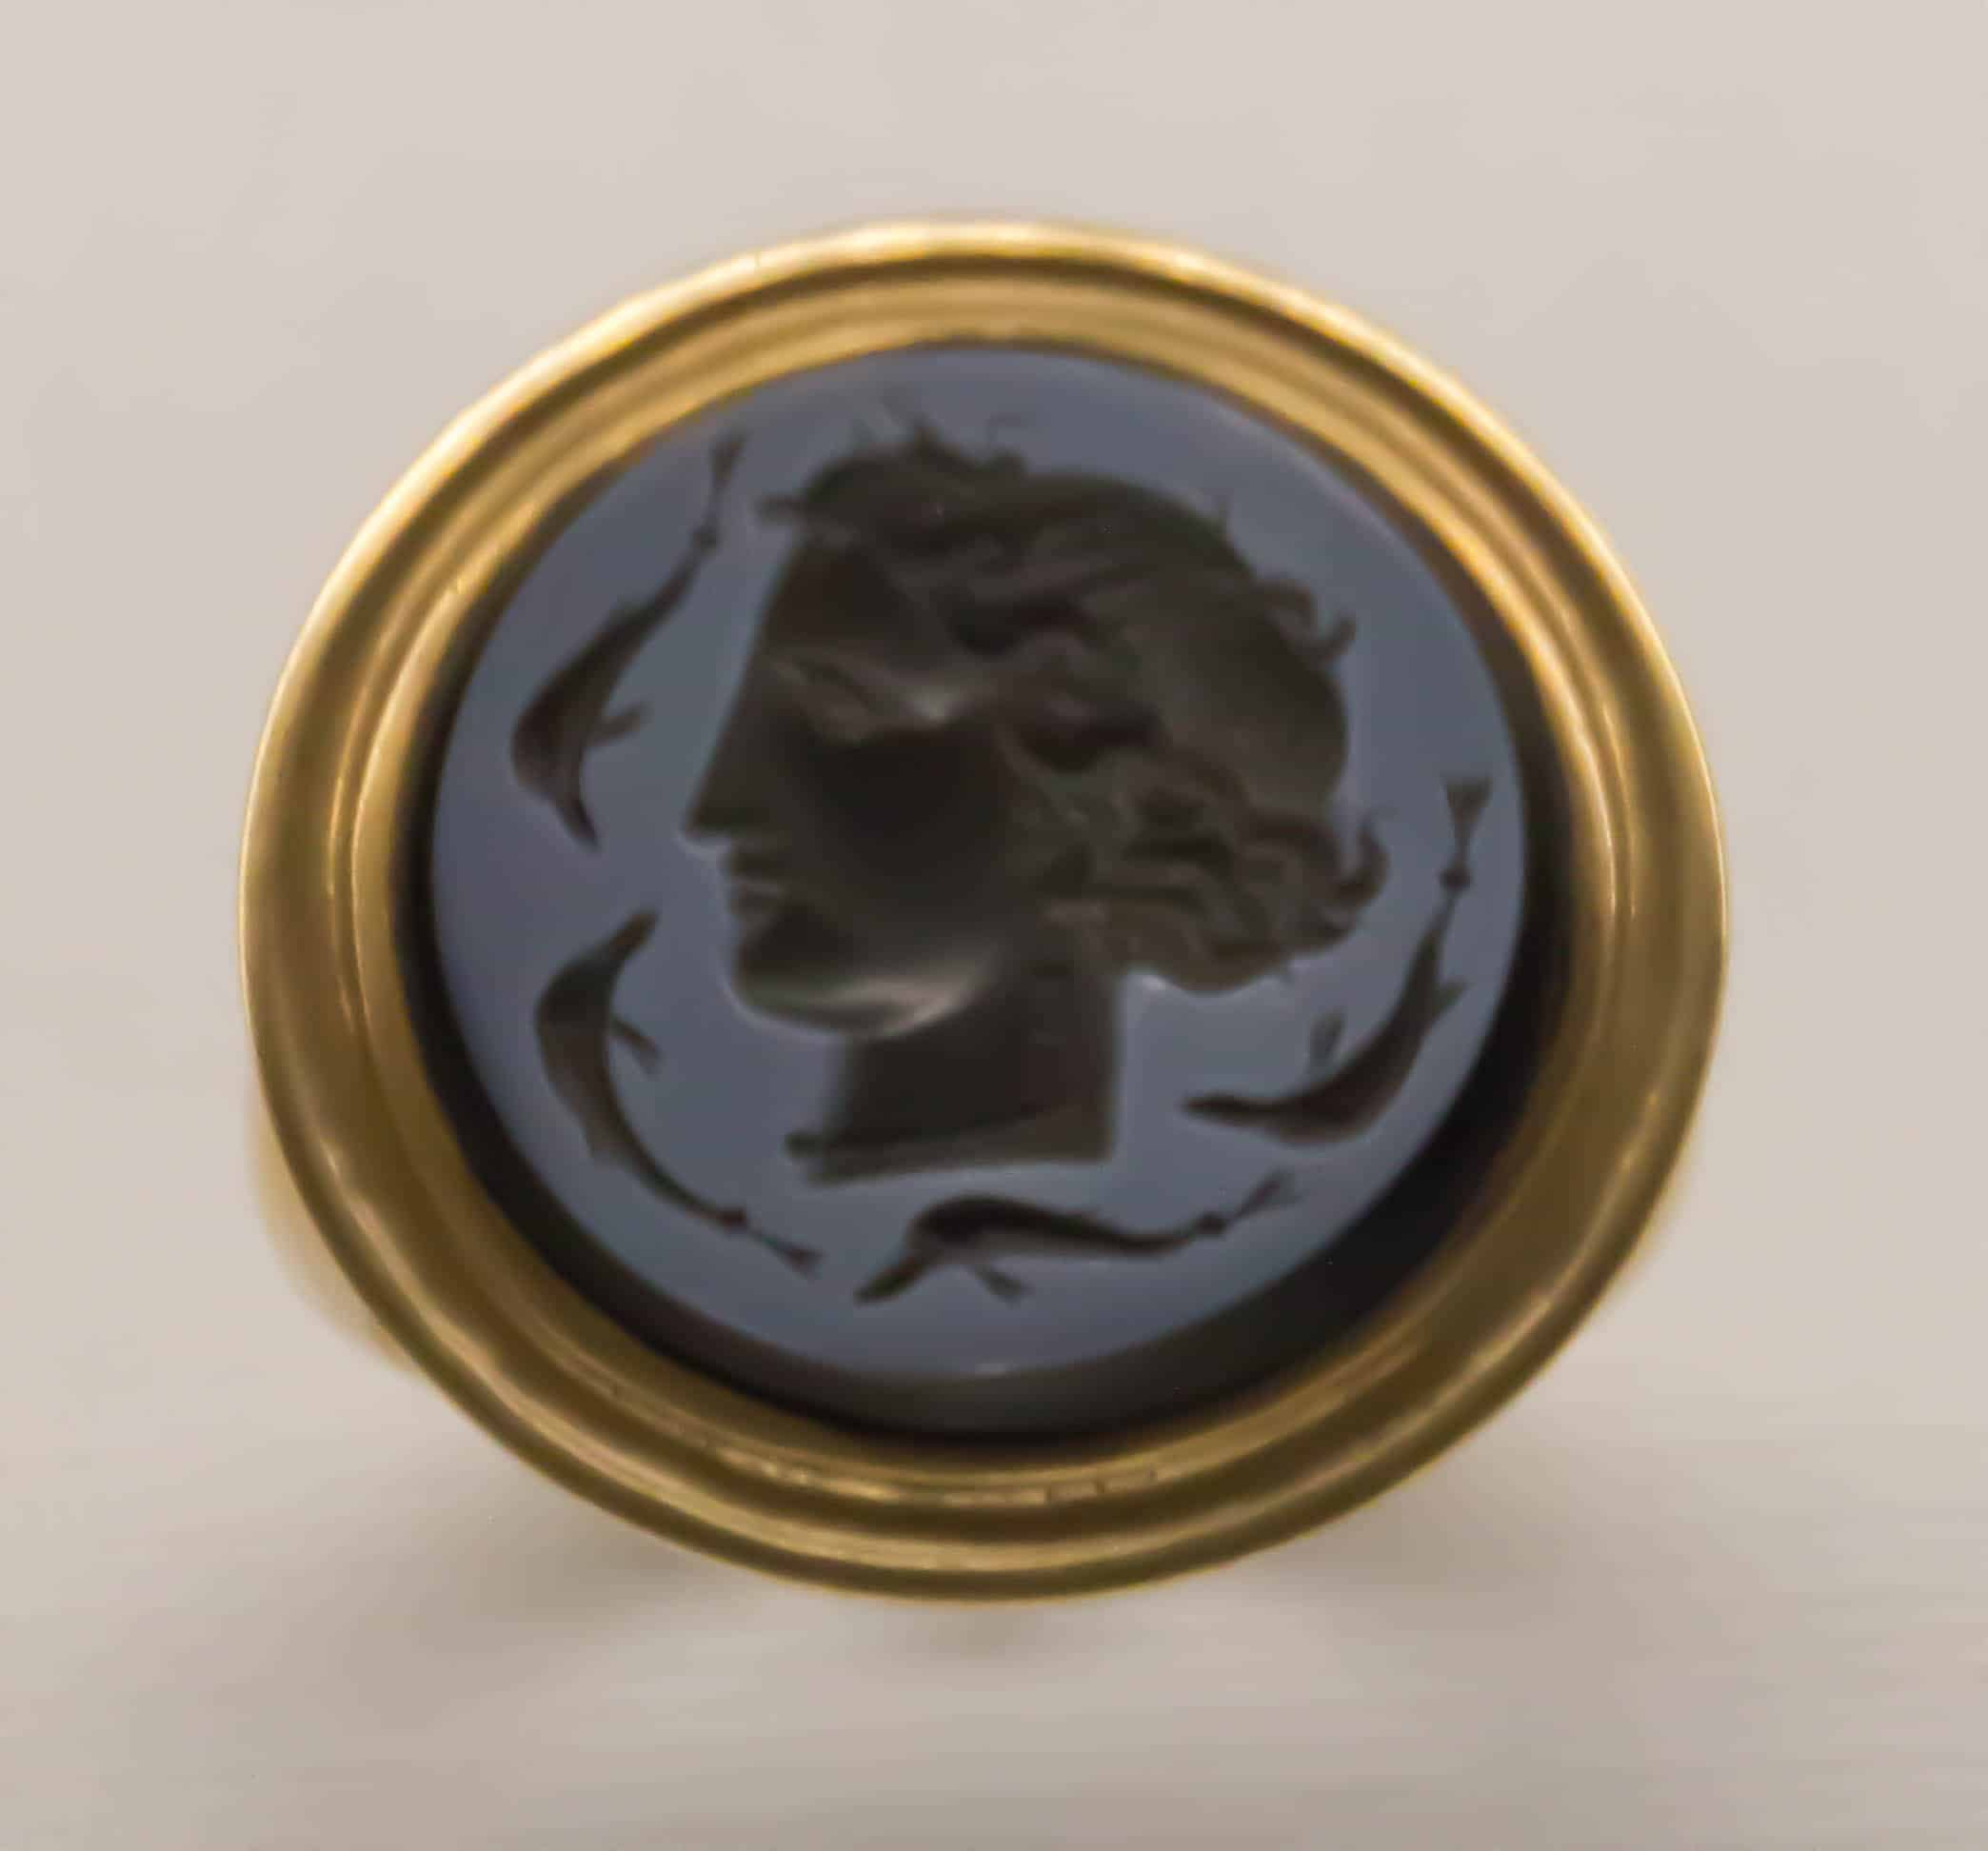 Signet Ring Italy Early 19th Century Agate Intaglio.jpg